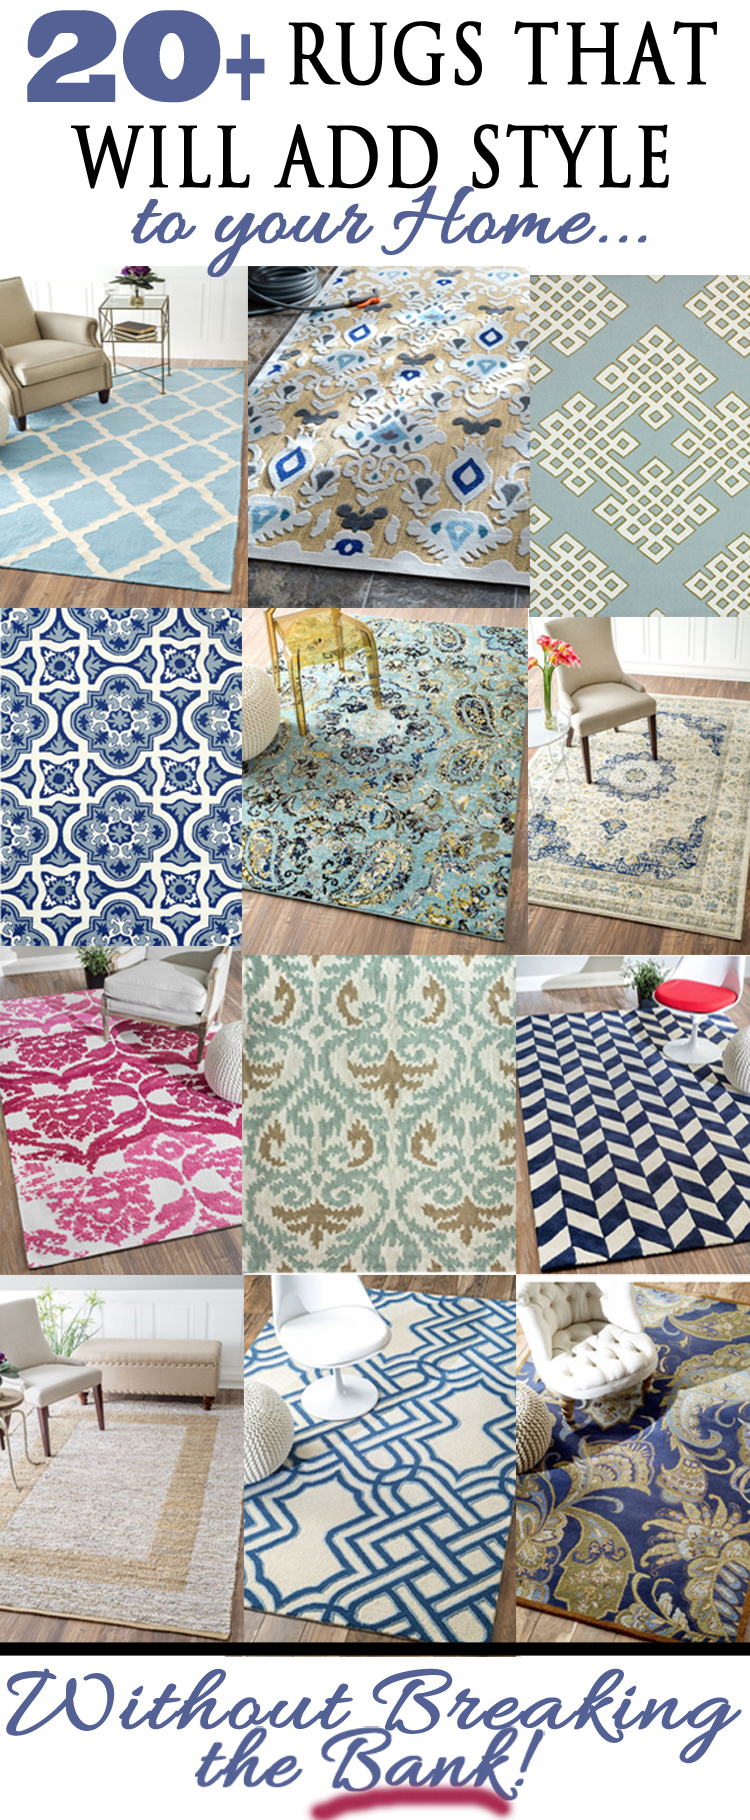 Hand Picked Collection of Rugs that Rock!